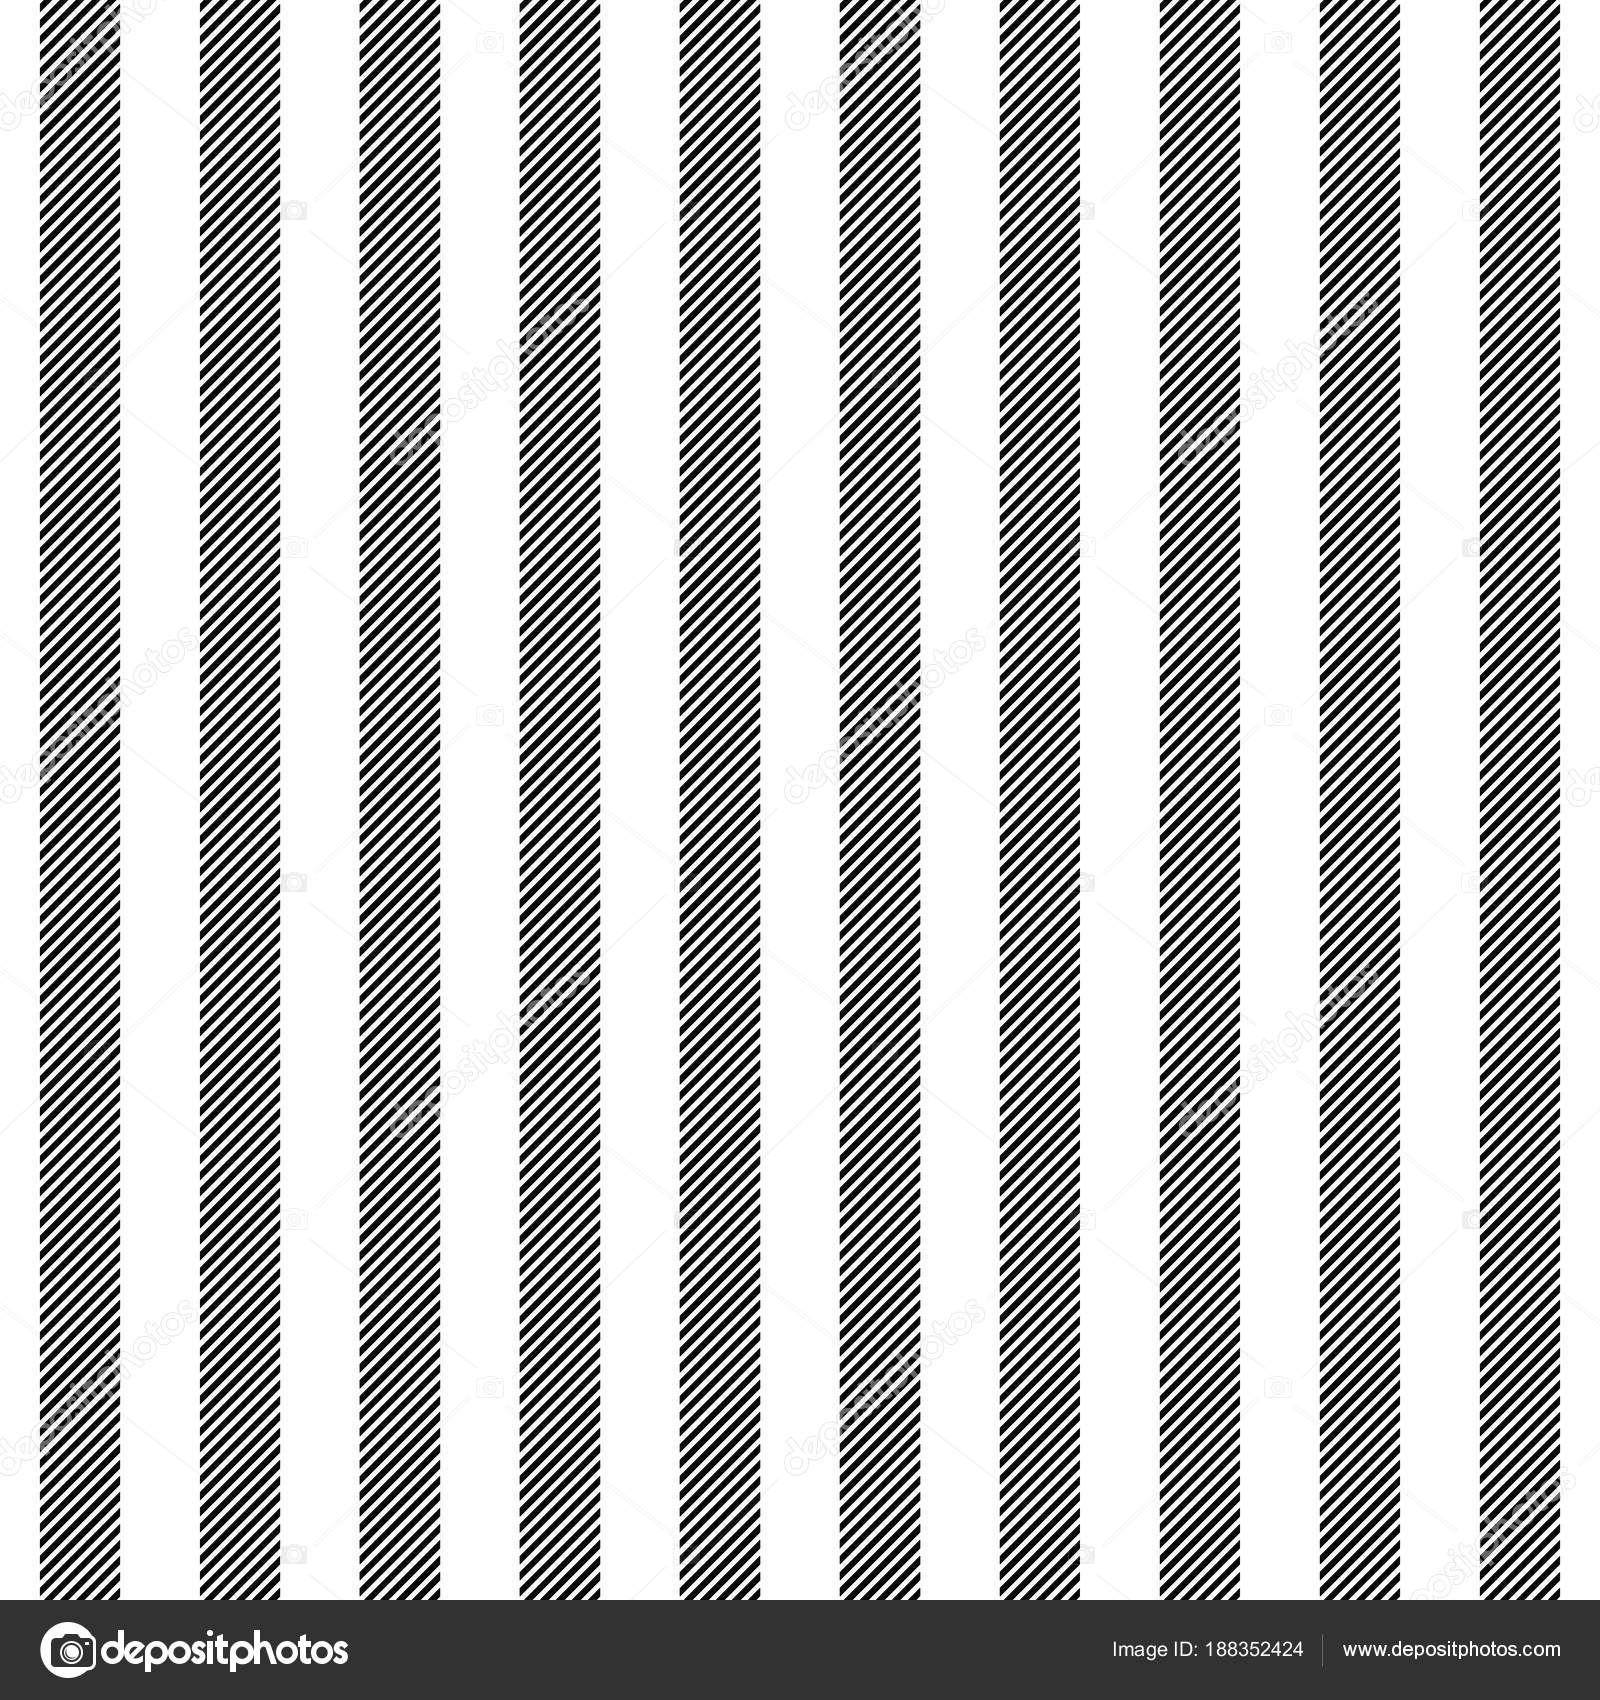 Black White Striped Fabric Texture Seamless Pattern Stock Vector